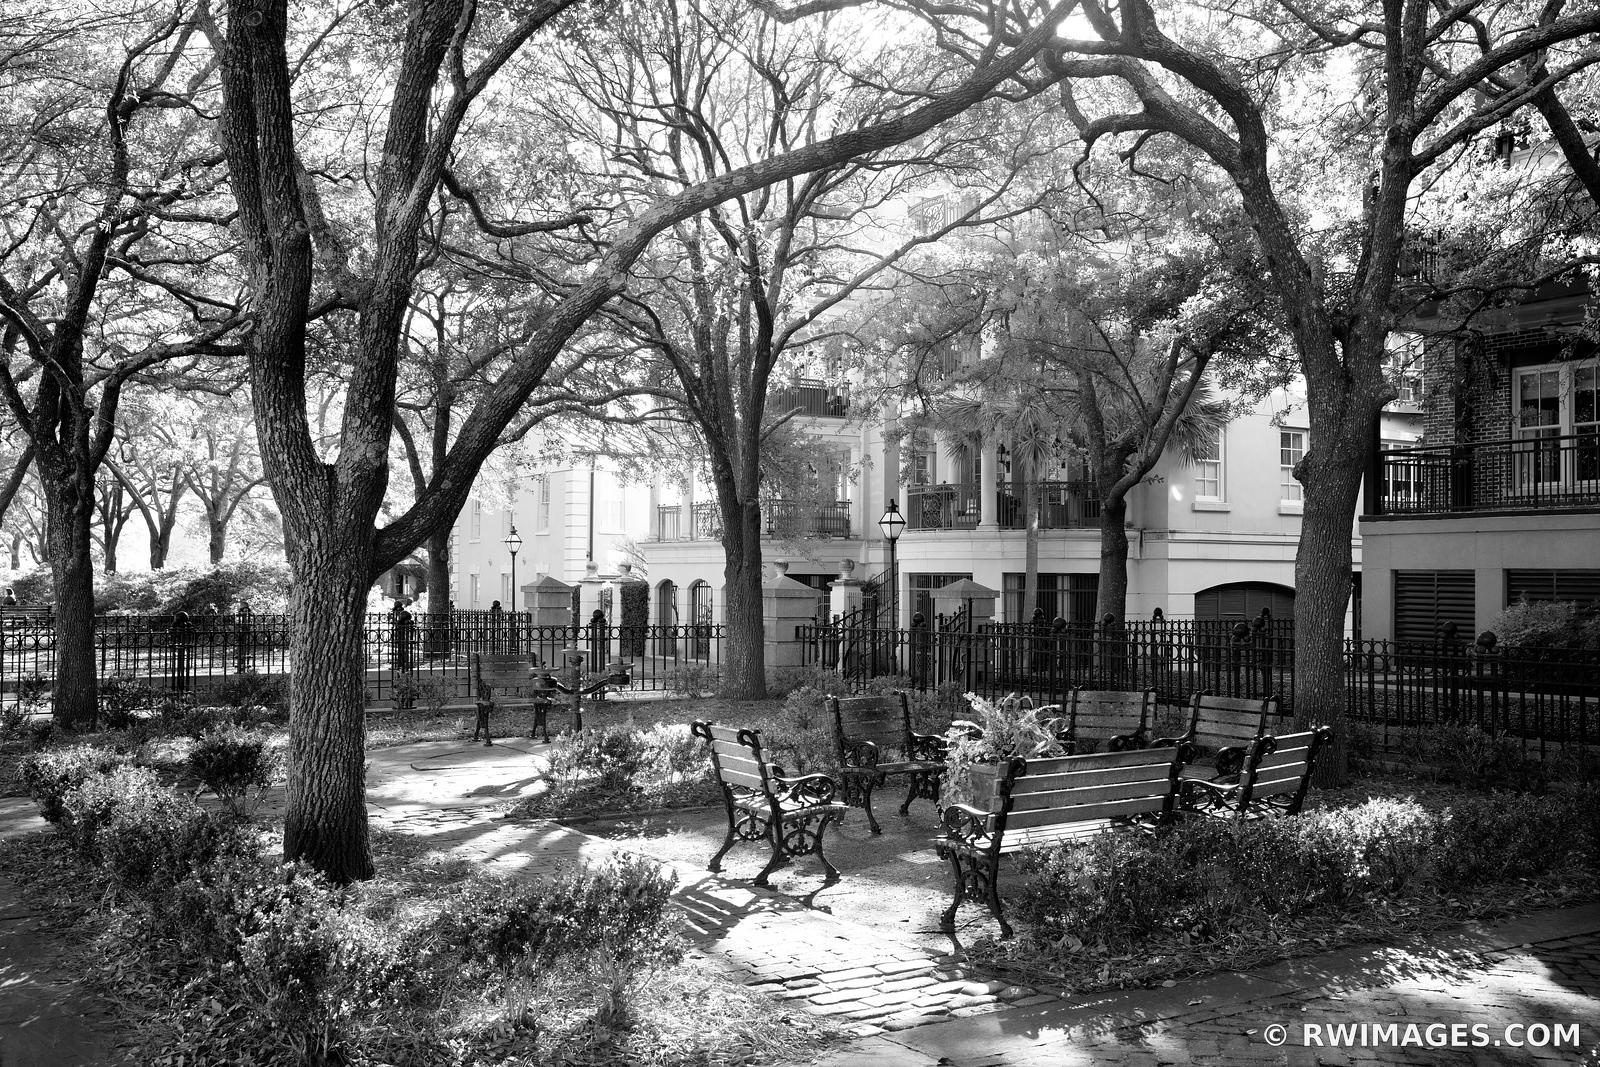 WATERFRONT PARK CHARLESTON SOUTH CAROLINA BLACK AND WHITE